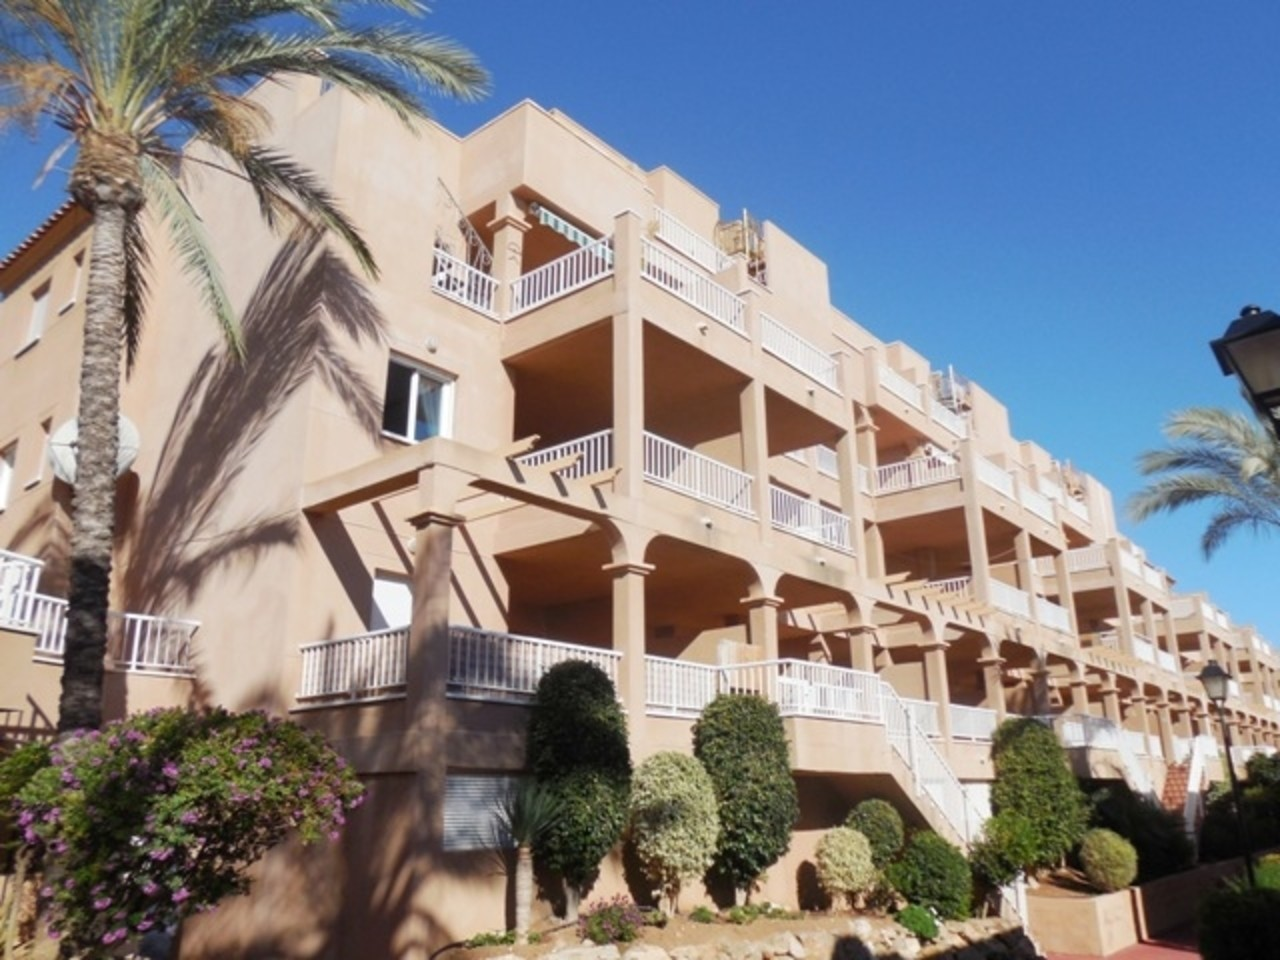 Apartment for sale in Mojacar with sea views